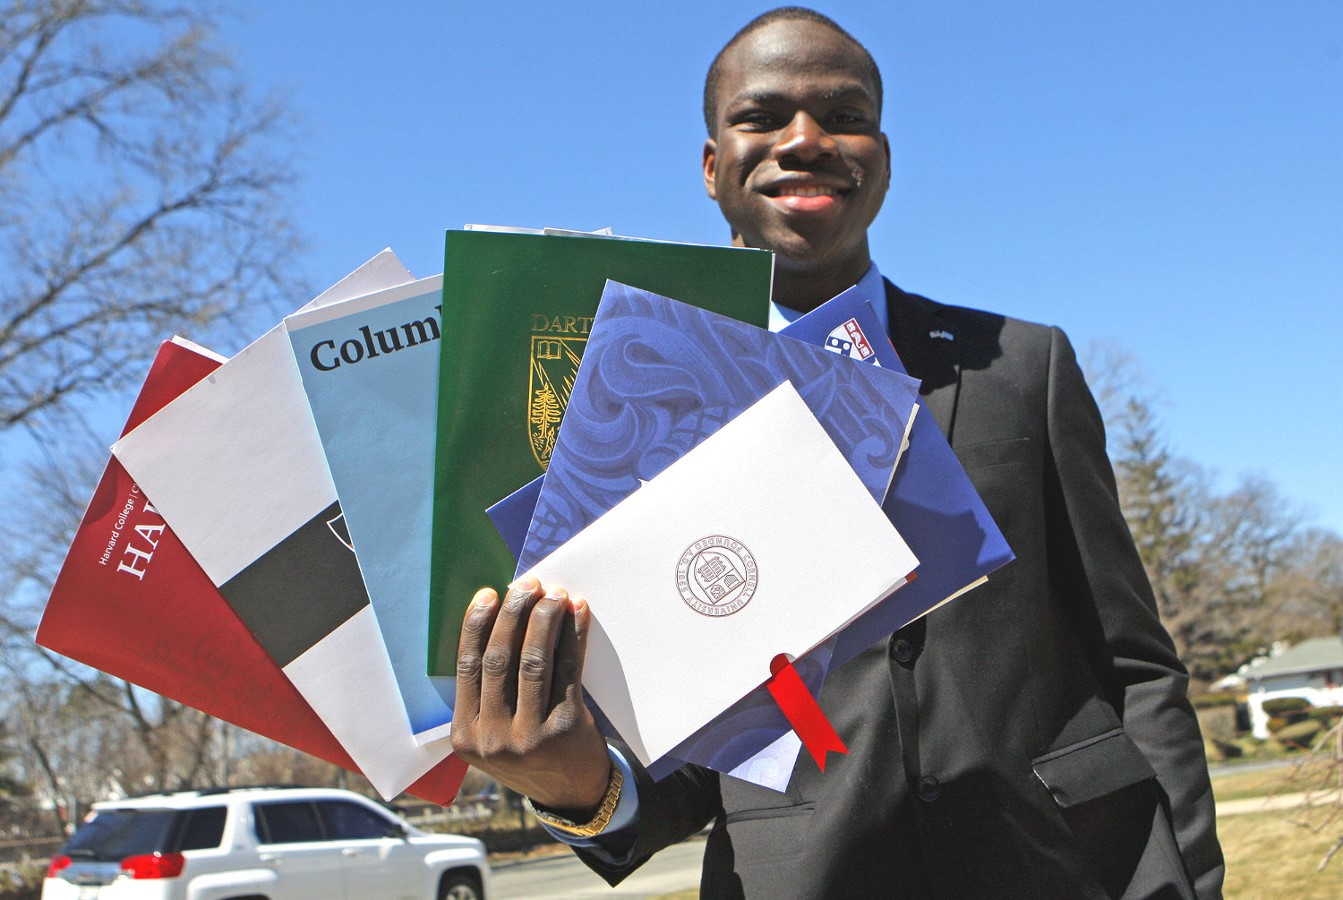 ELMONT, NY - April 4, 2015: This is a picture of Harold Ekeh 17 at his house a 459 Parkway Dr. holding 7 Ivy League College Pamphlets. Mr. Ekeh was accepted to 8 Ivy League colleges. (Photo by Victor Alcorn) PHOTO CREDIT GOES TO VICTORALCORN.COM